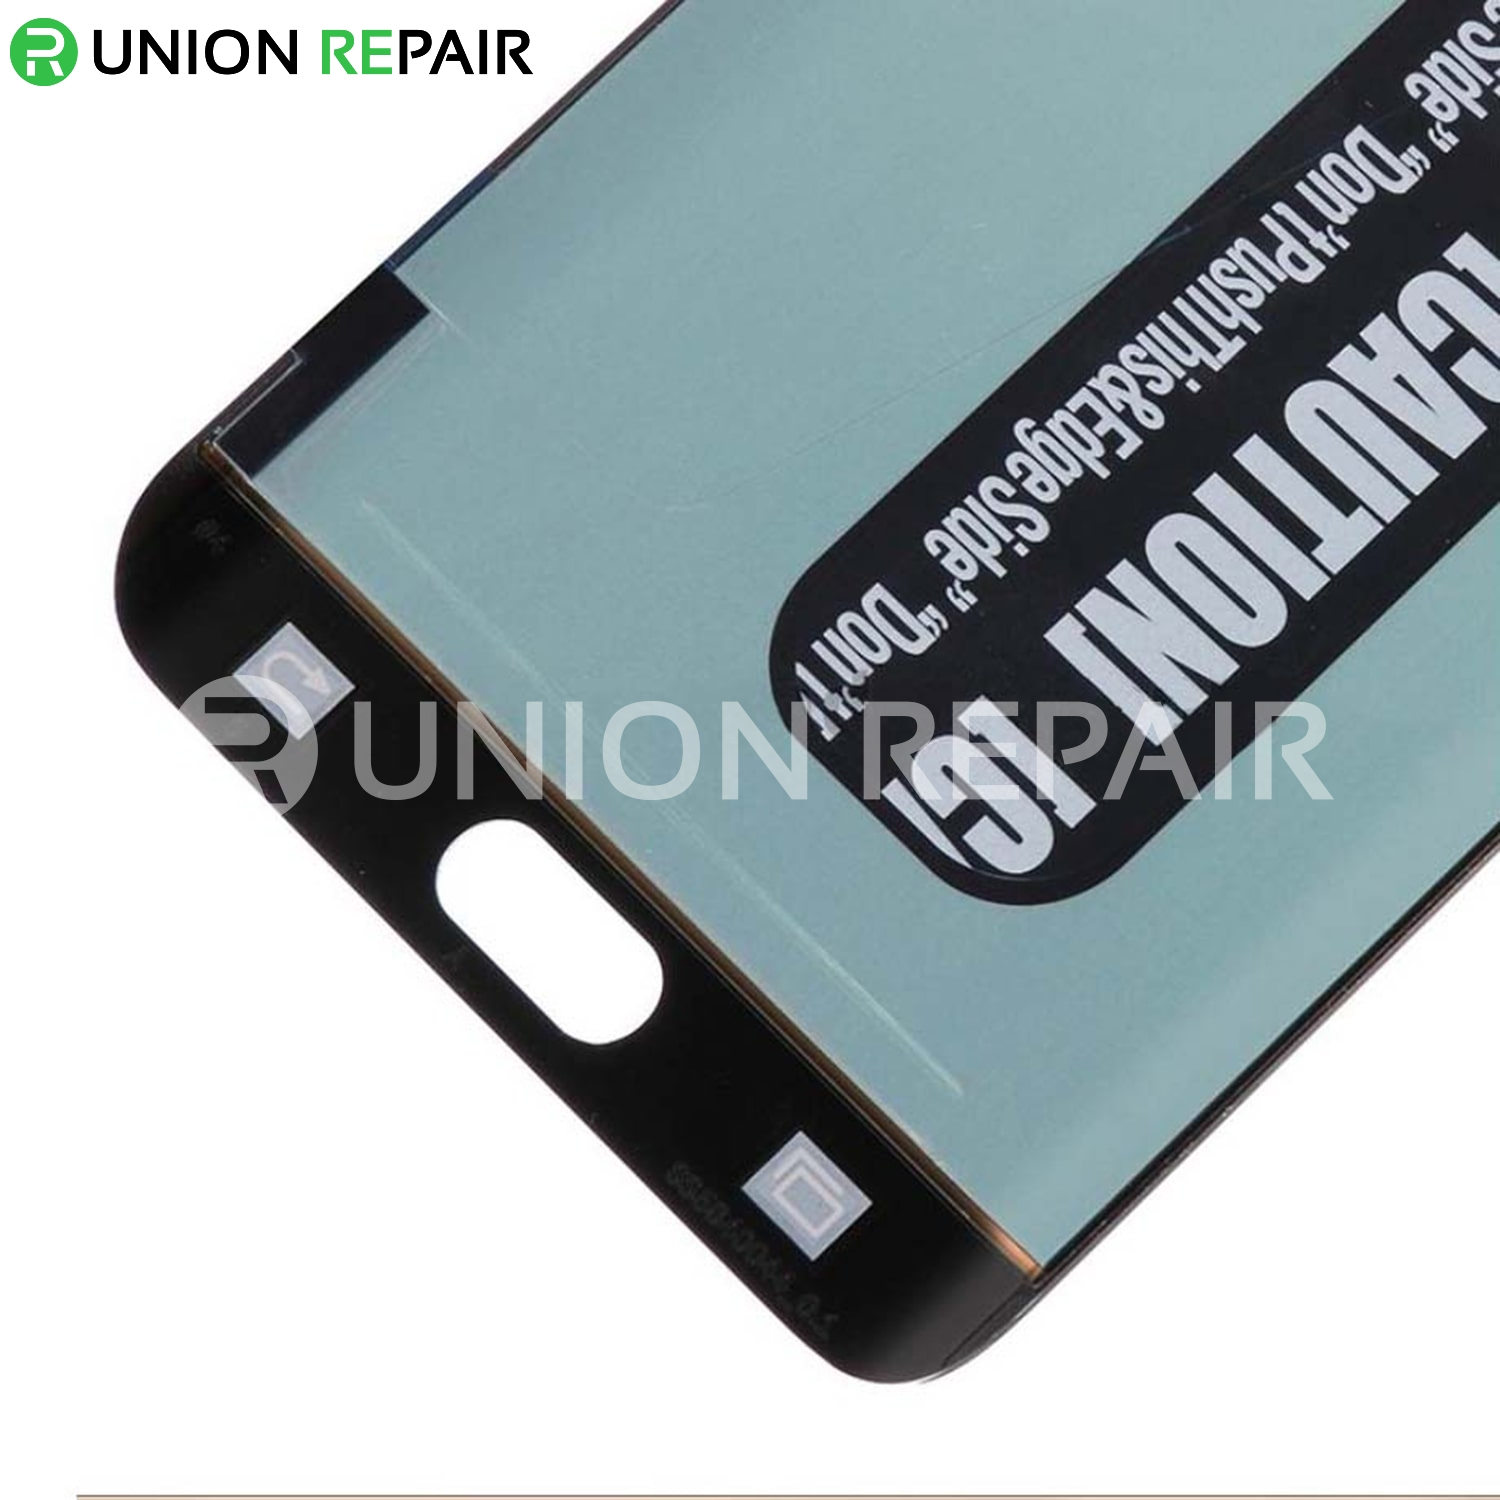 Replacement for Samsung Galaxy S6 Edge Plus SM-G928 Series LCD Screen with Digitizer Assembly - Silver